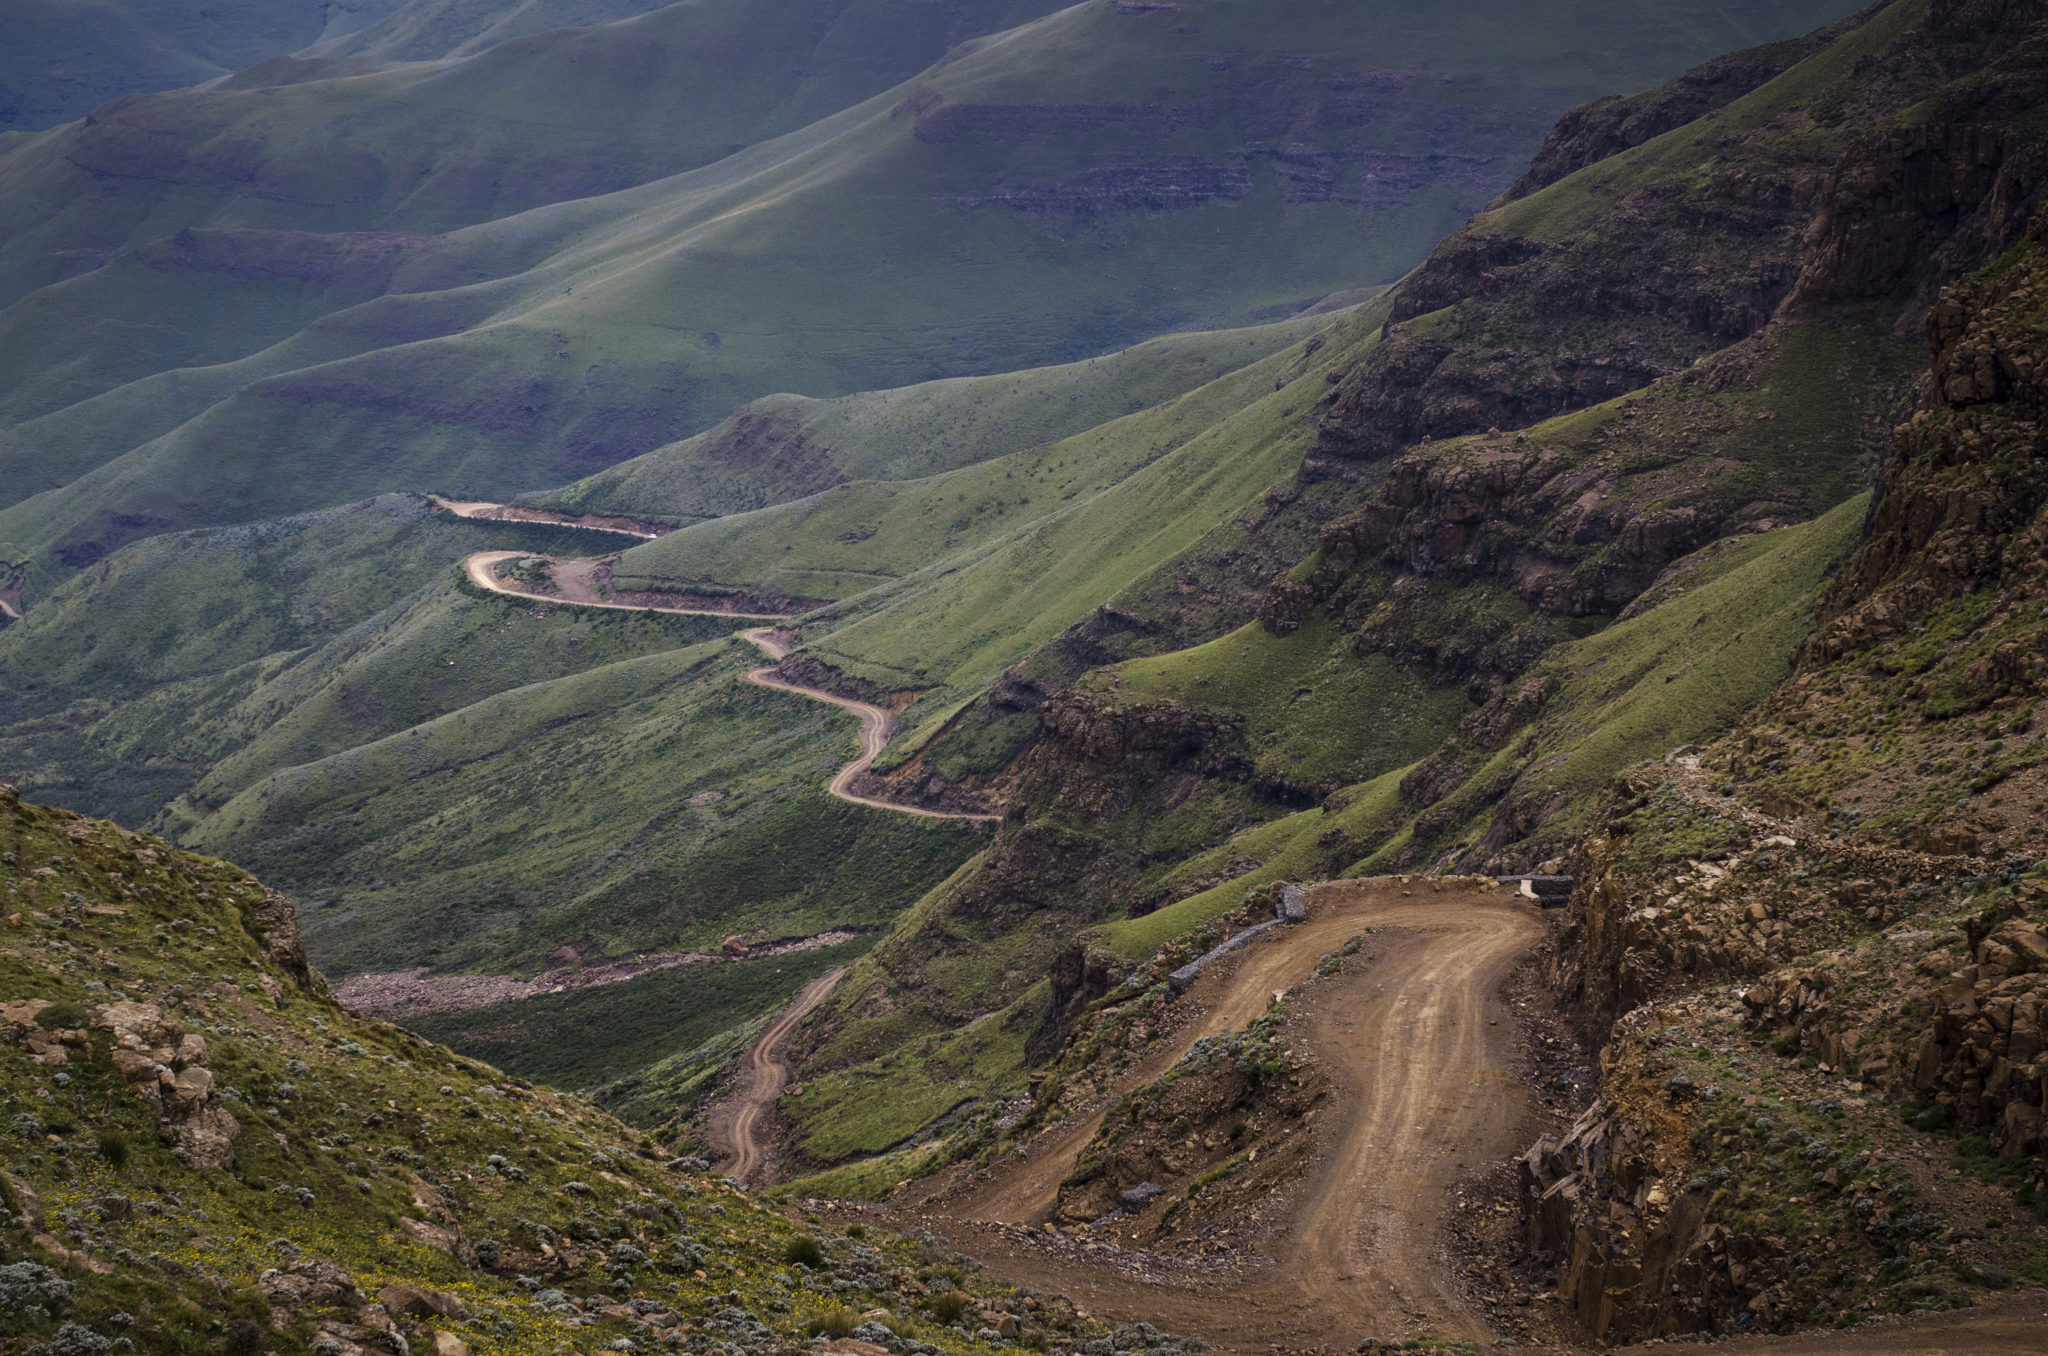 Sani-Pass-Drakensberg-South-Africa-mountain-pass